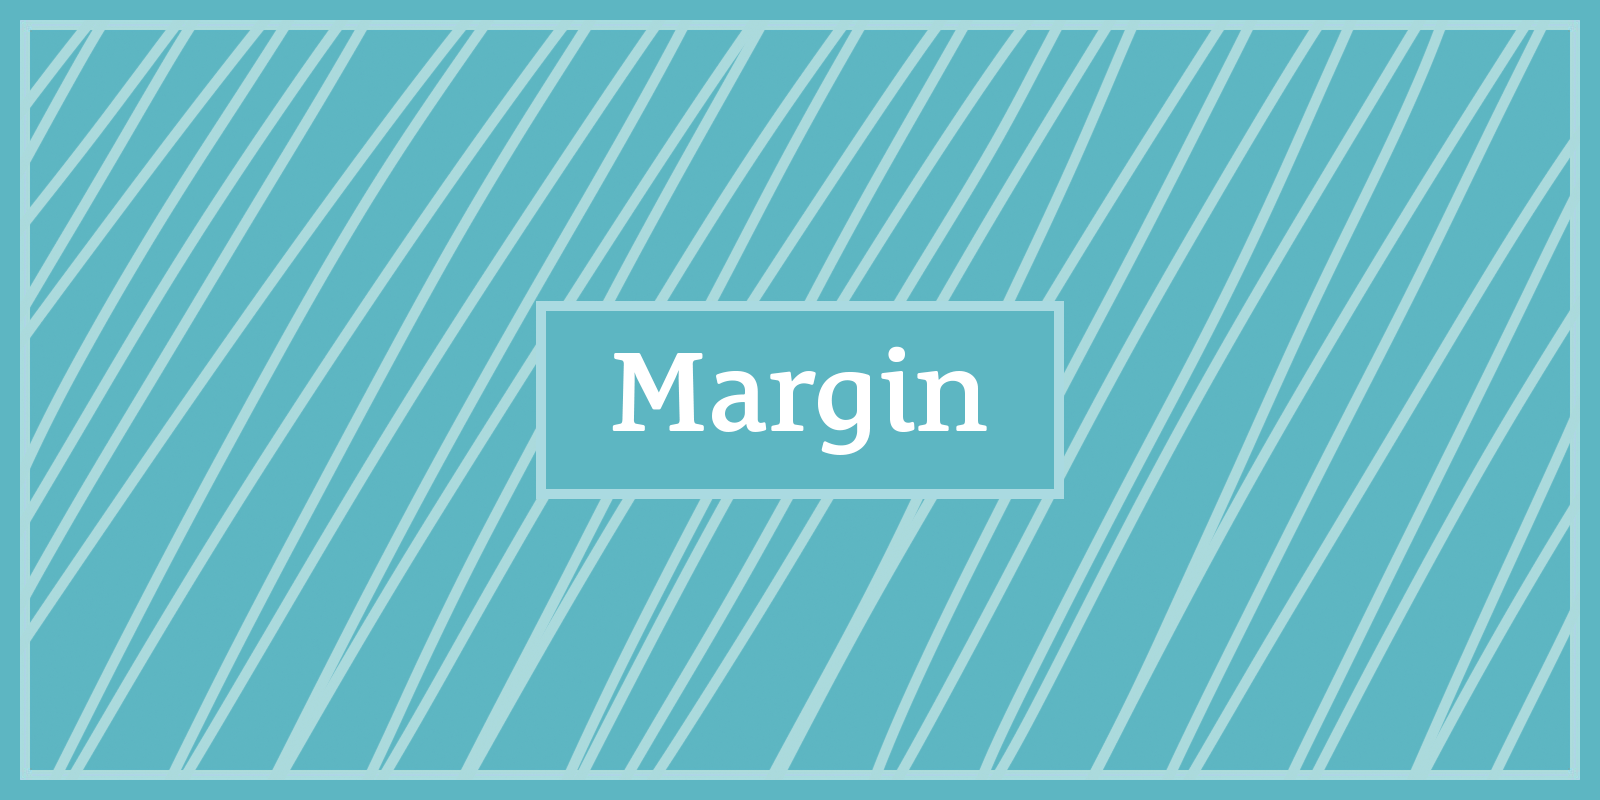 439: Margin Is Not a Luxury